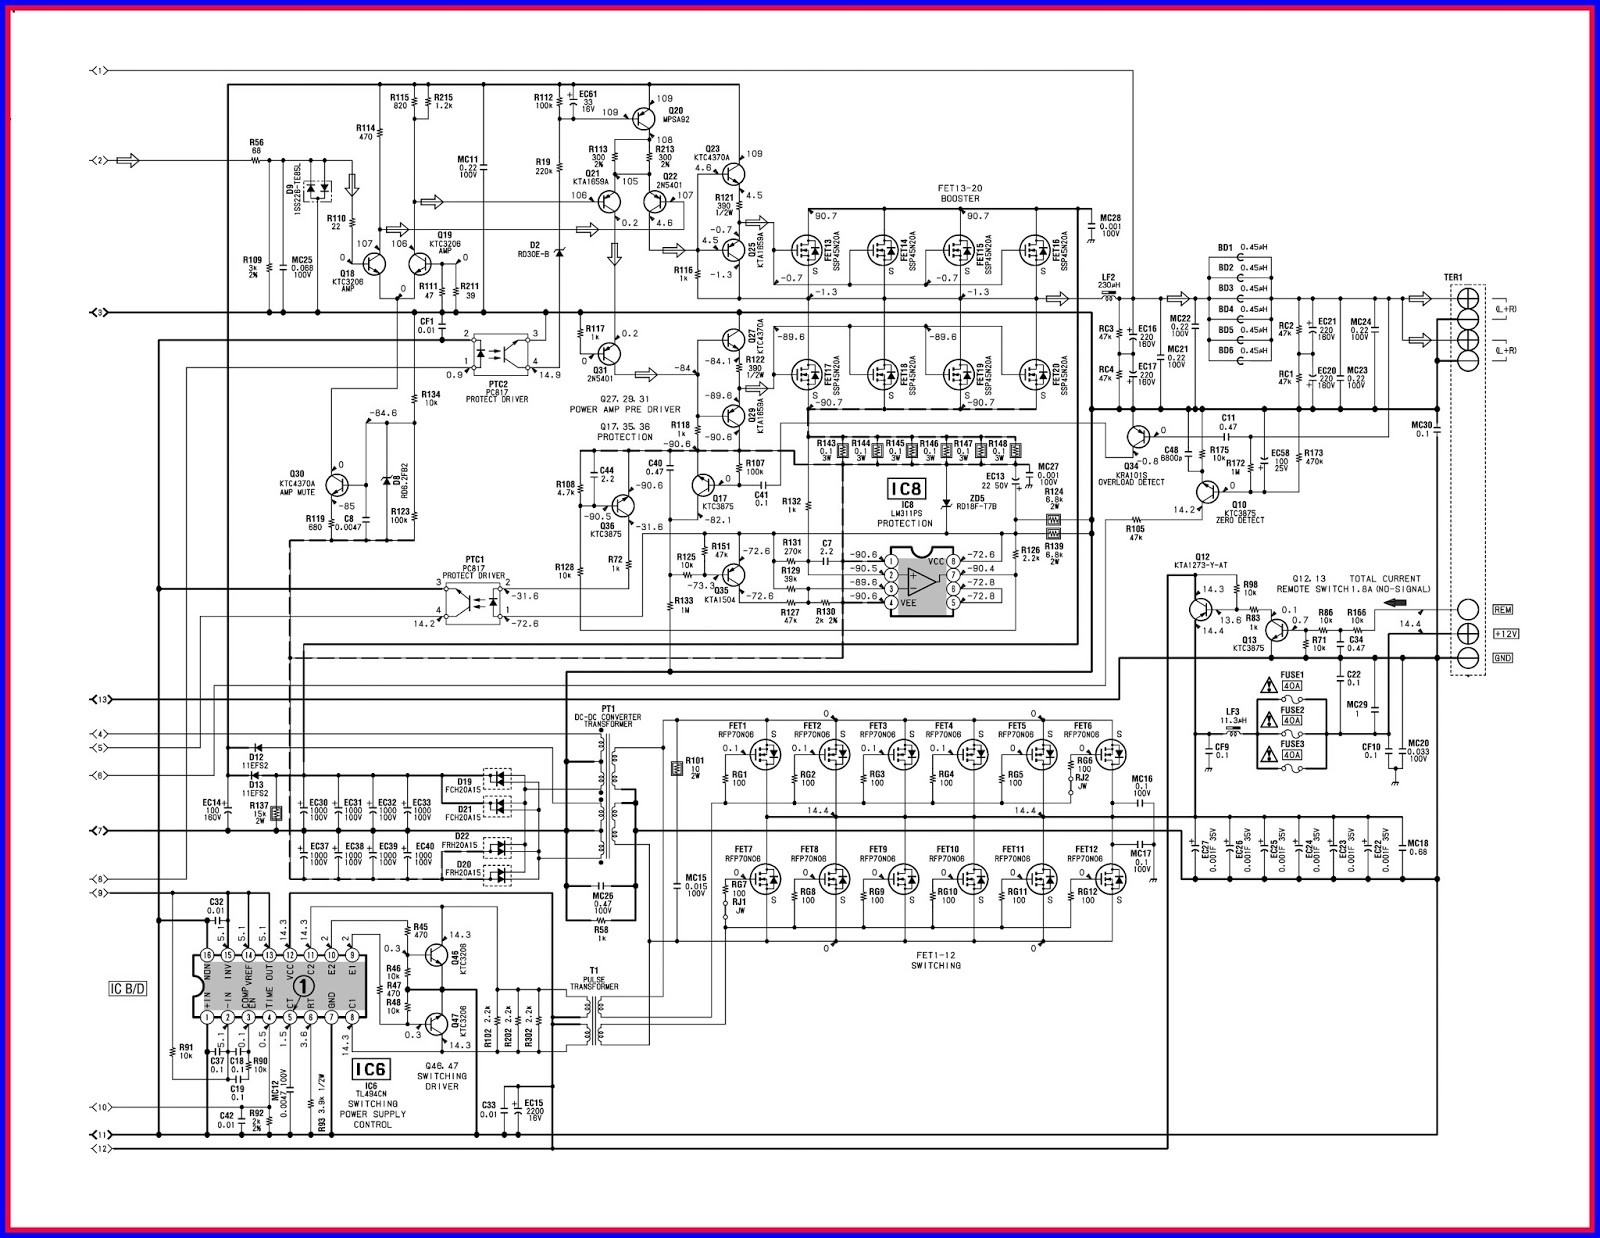 Ta8215 4 Channel Power Amplifier Circuit Audio Quad Supply Diagram Tradeoficcom Car Connection For Wiring Ponents Of